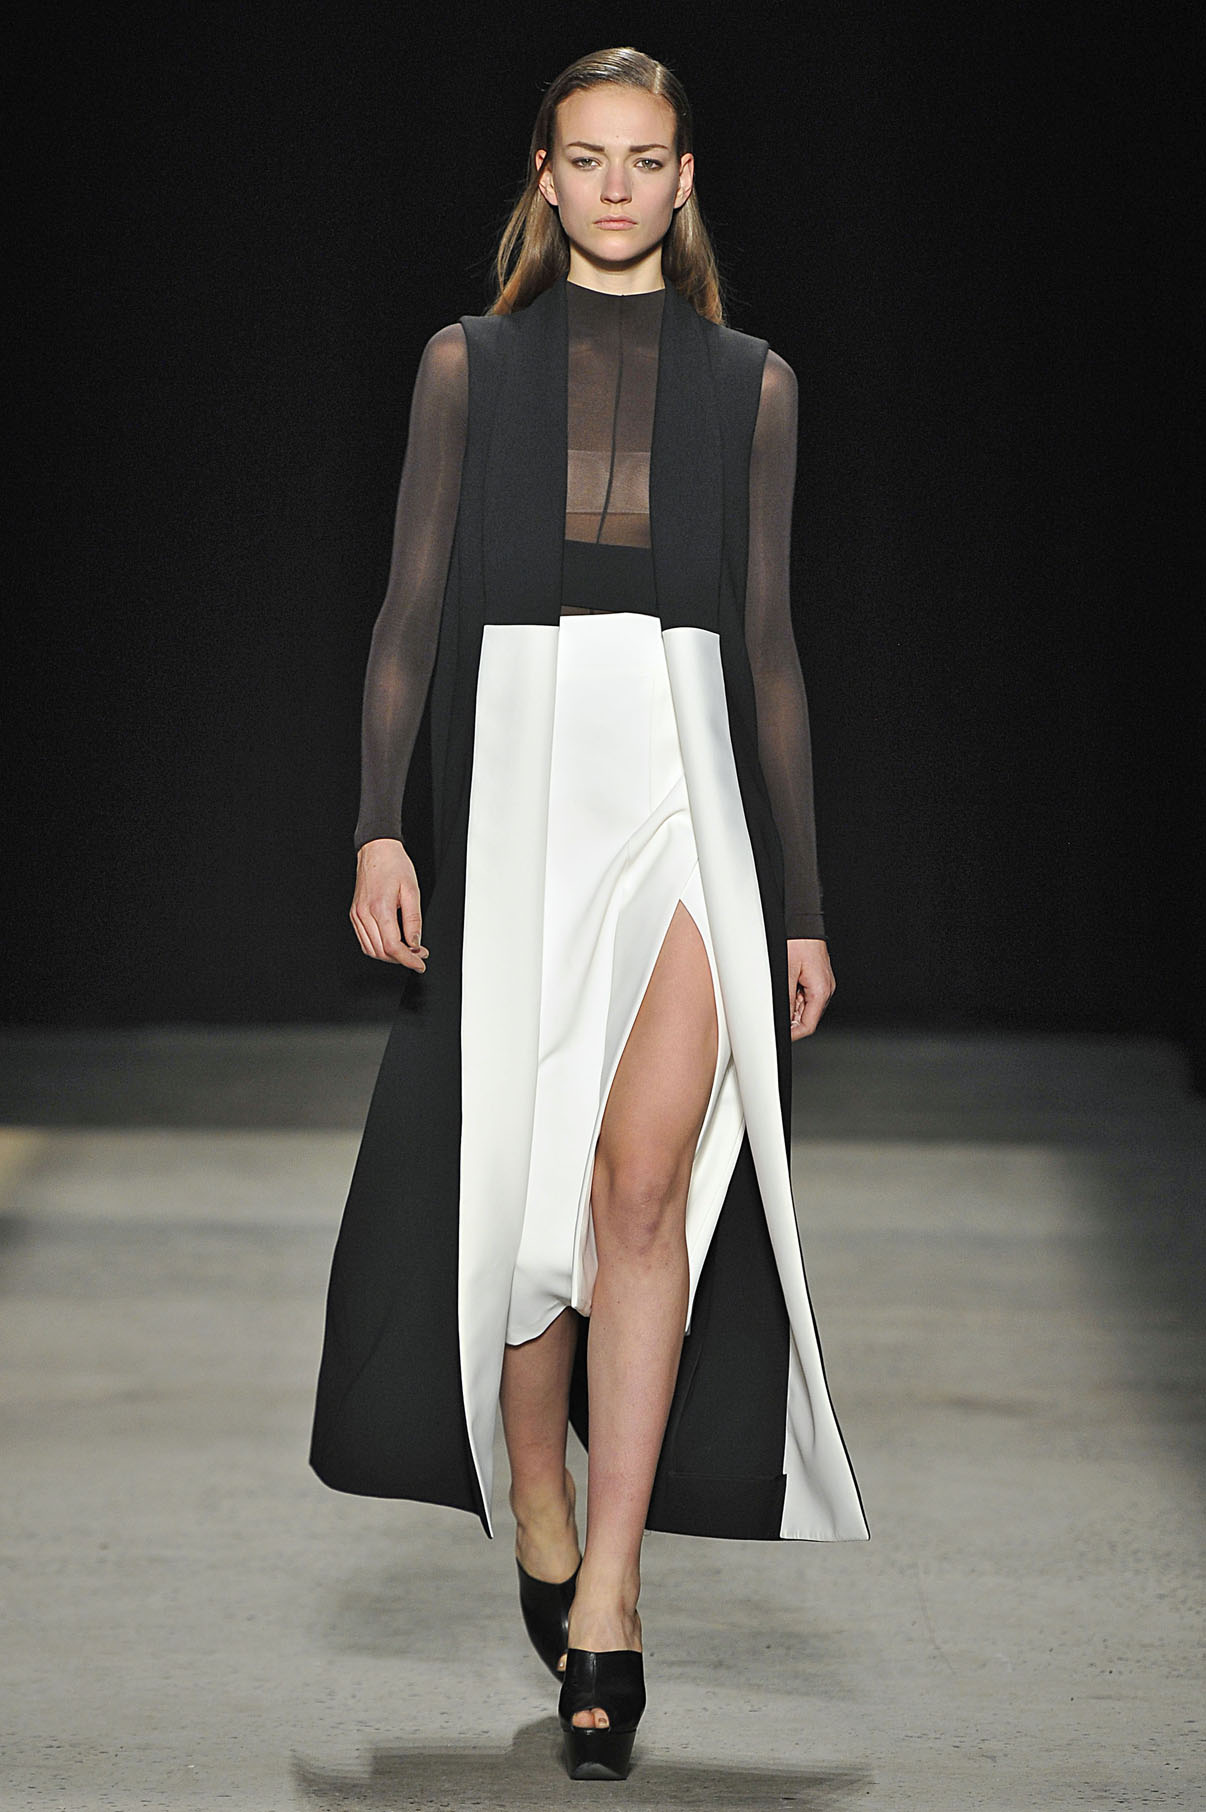 Look 1 Black/chalk wool/silk sleeveless coat with ebony sheer jersey top and white scuba crepe skirt.